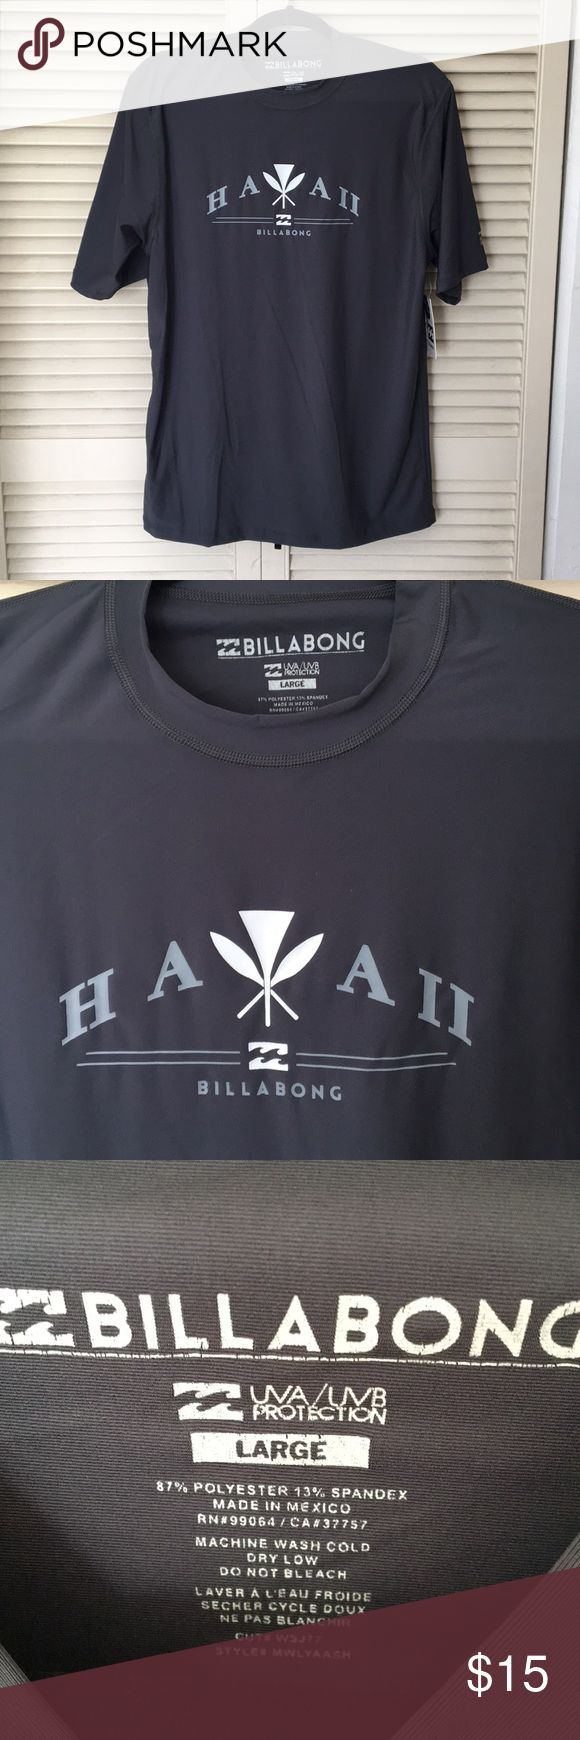 NWT Billabong short sleeve surf tee New with tags! Billabong surf tee made with special combination of nylon and spandex with a unique silk-touch feel. Provides loose comfort without cling. Offers protection from the sun.  Hawaii and iconic Billabong logo screened across chest.   Gray Large 87% polyester, 13% spandex UVA/UVB protection  Gray Billabong Shirts Tees - Short Sleeve